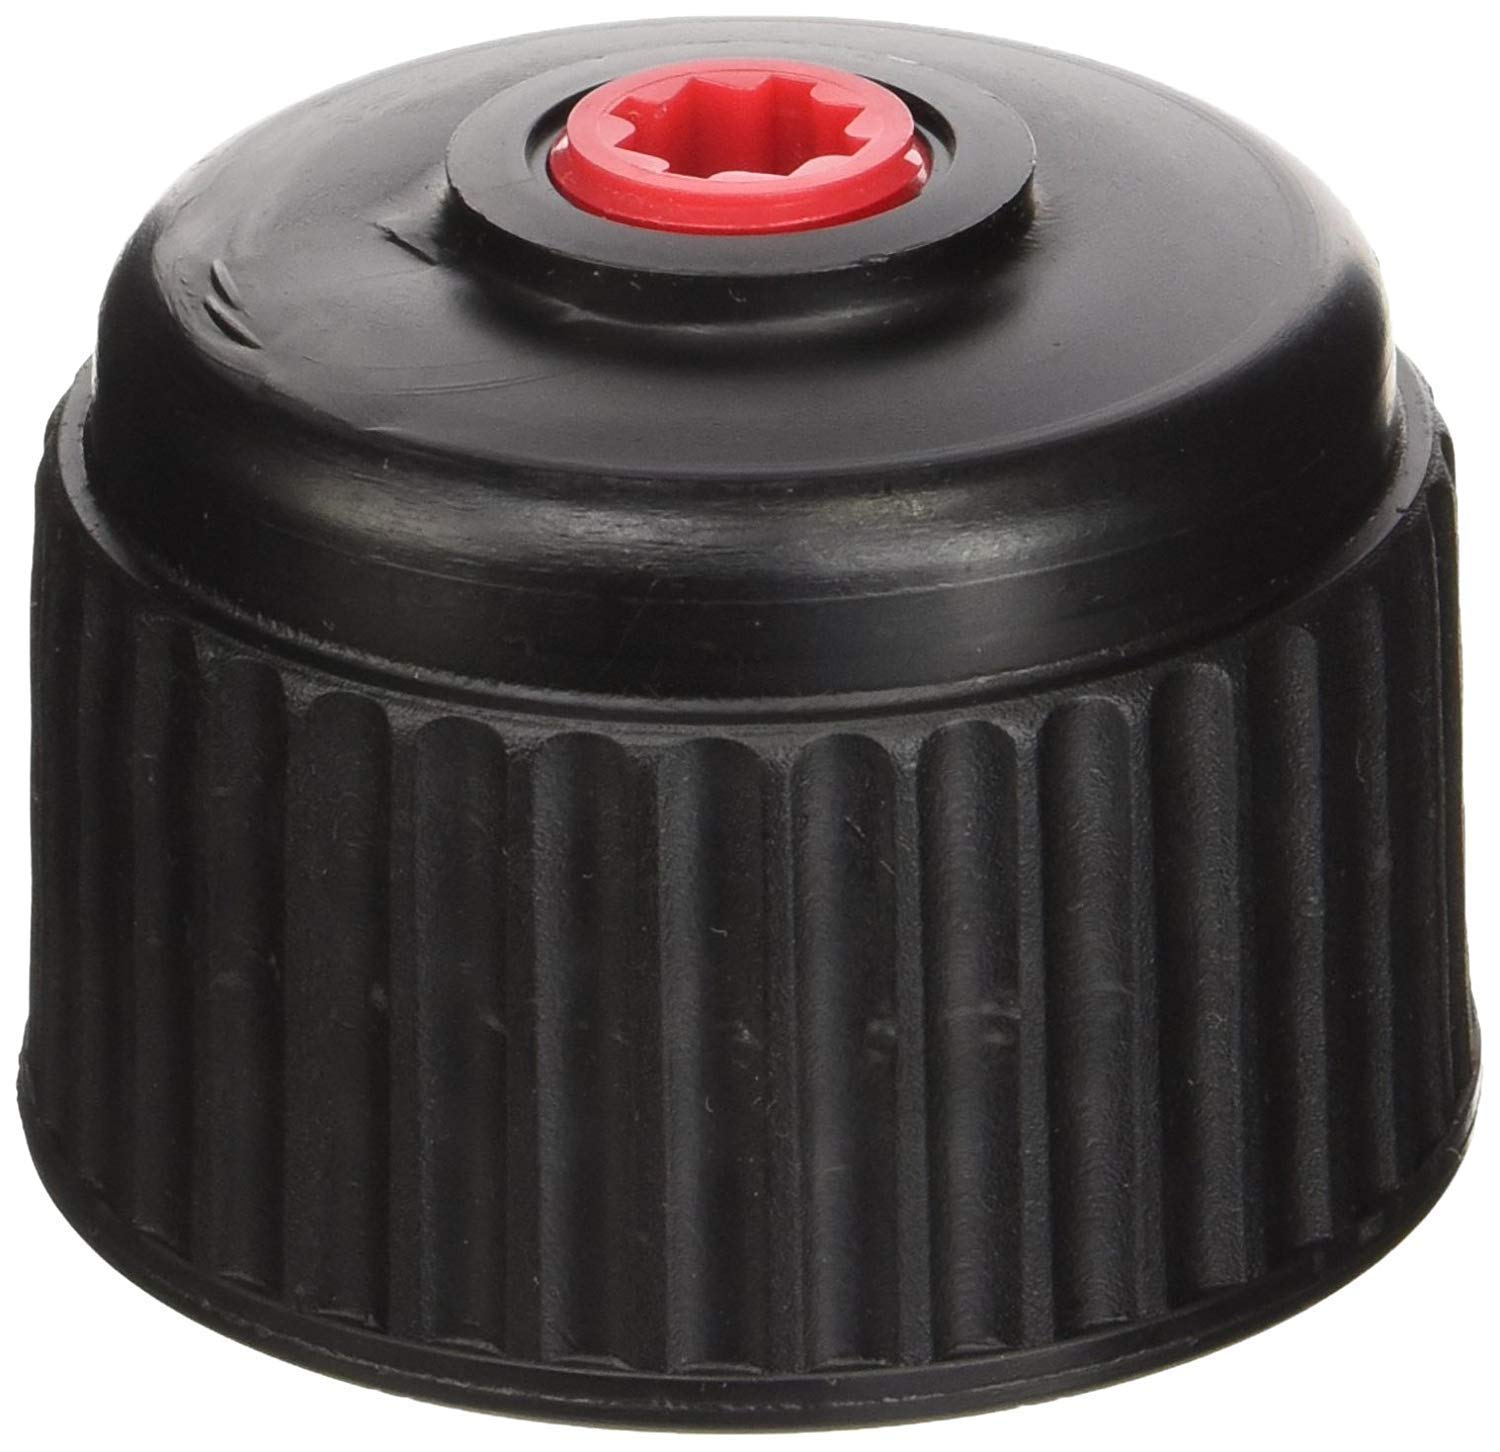 VP Racing Fuels 3042 Replacement Jug Cap (5) by VP Racing Fuels